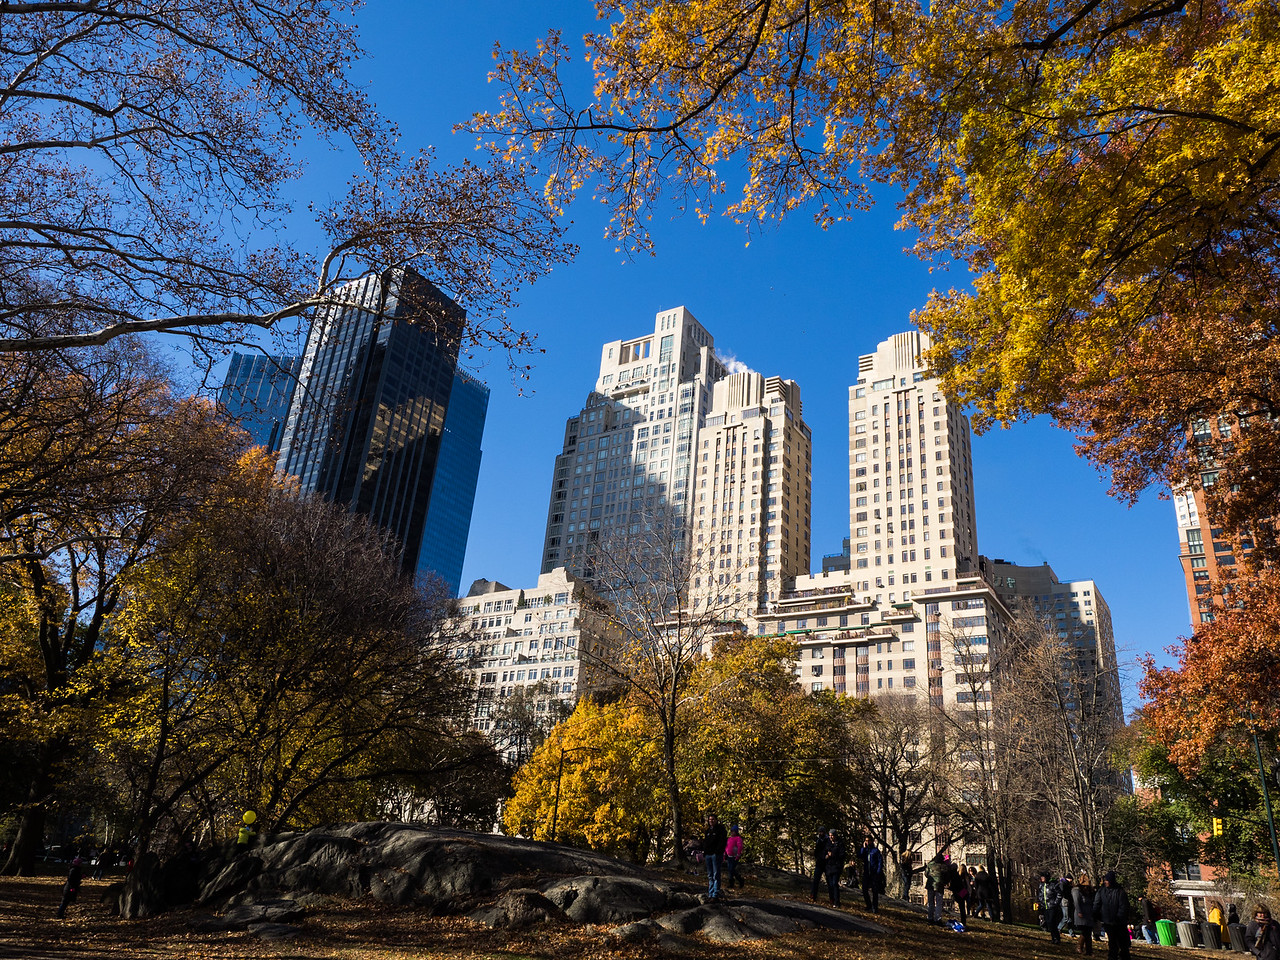 A beautiful day in Central Park, after the Macy's parade.